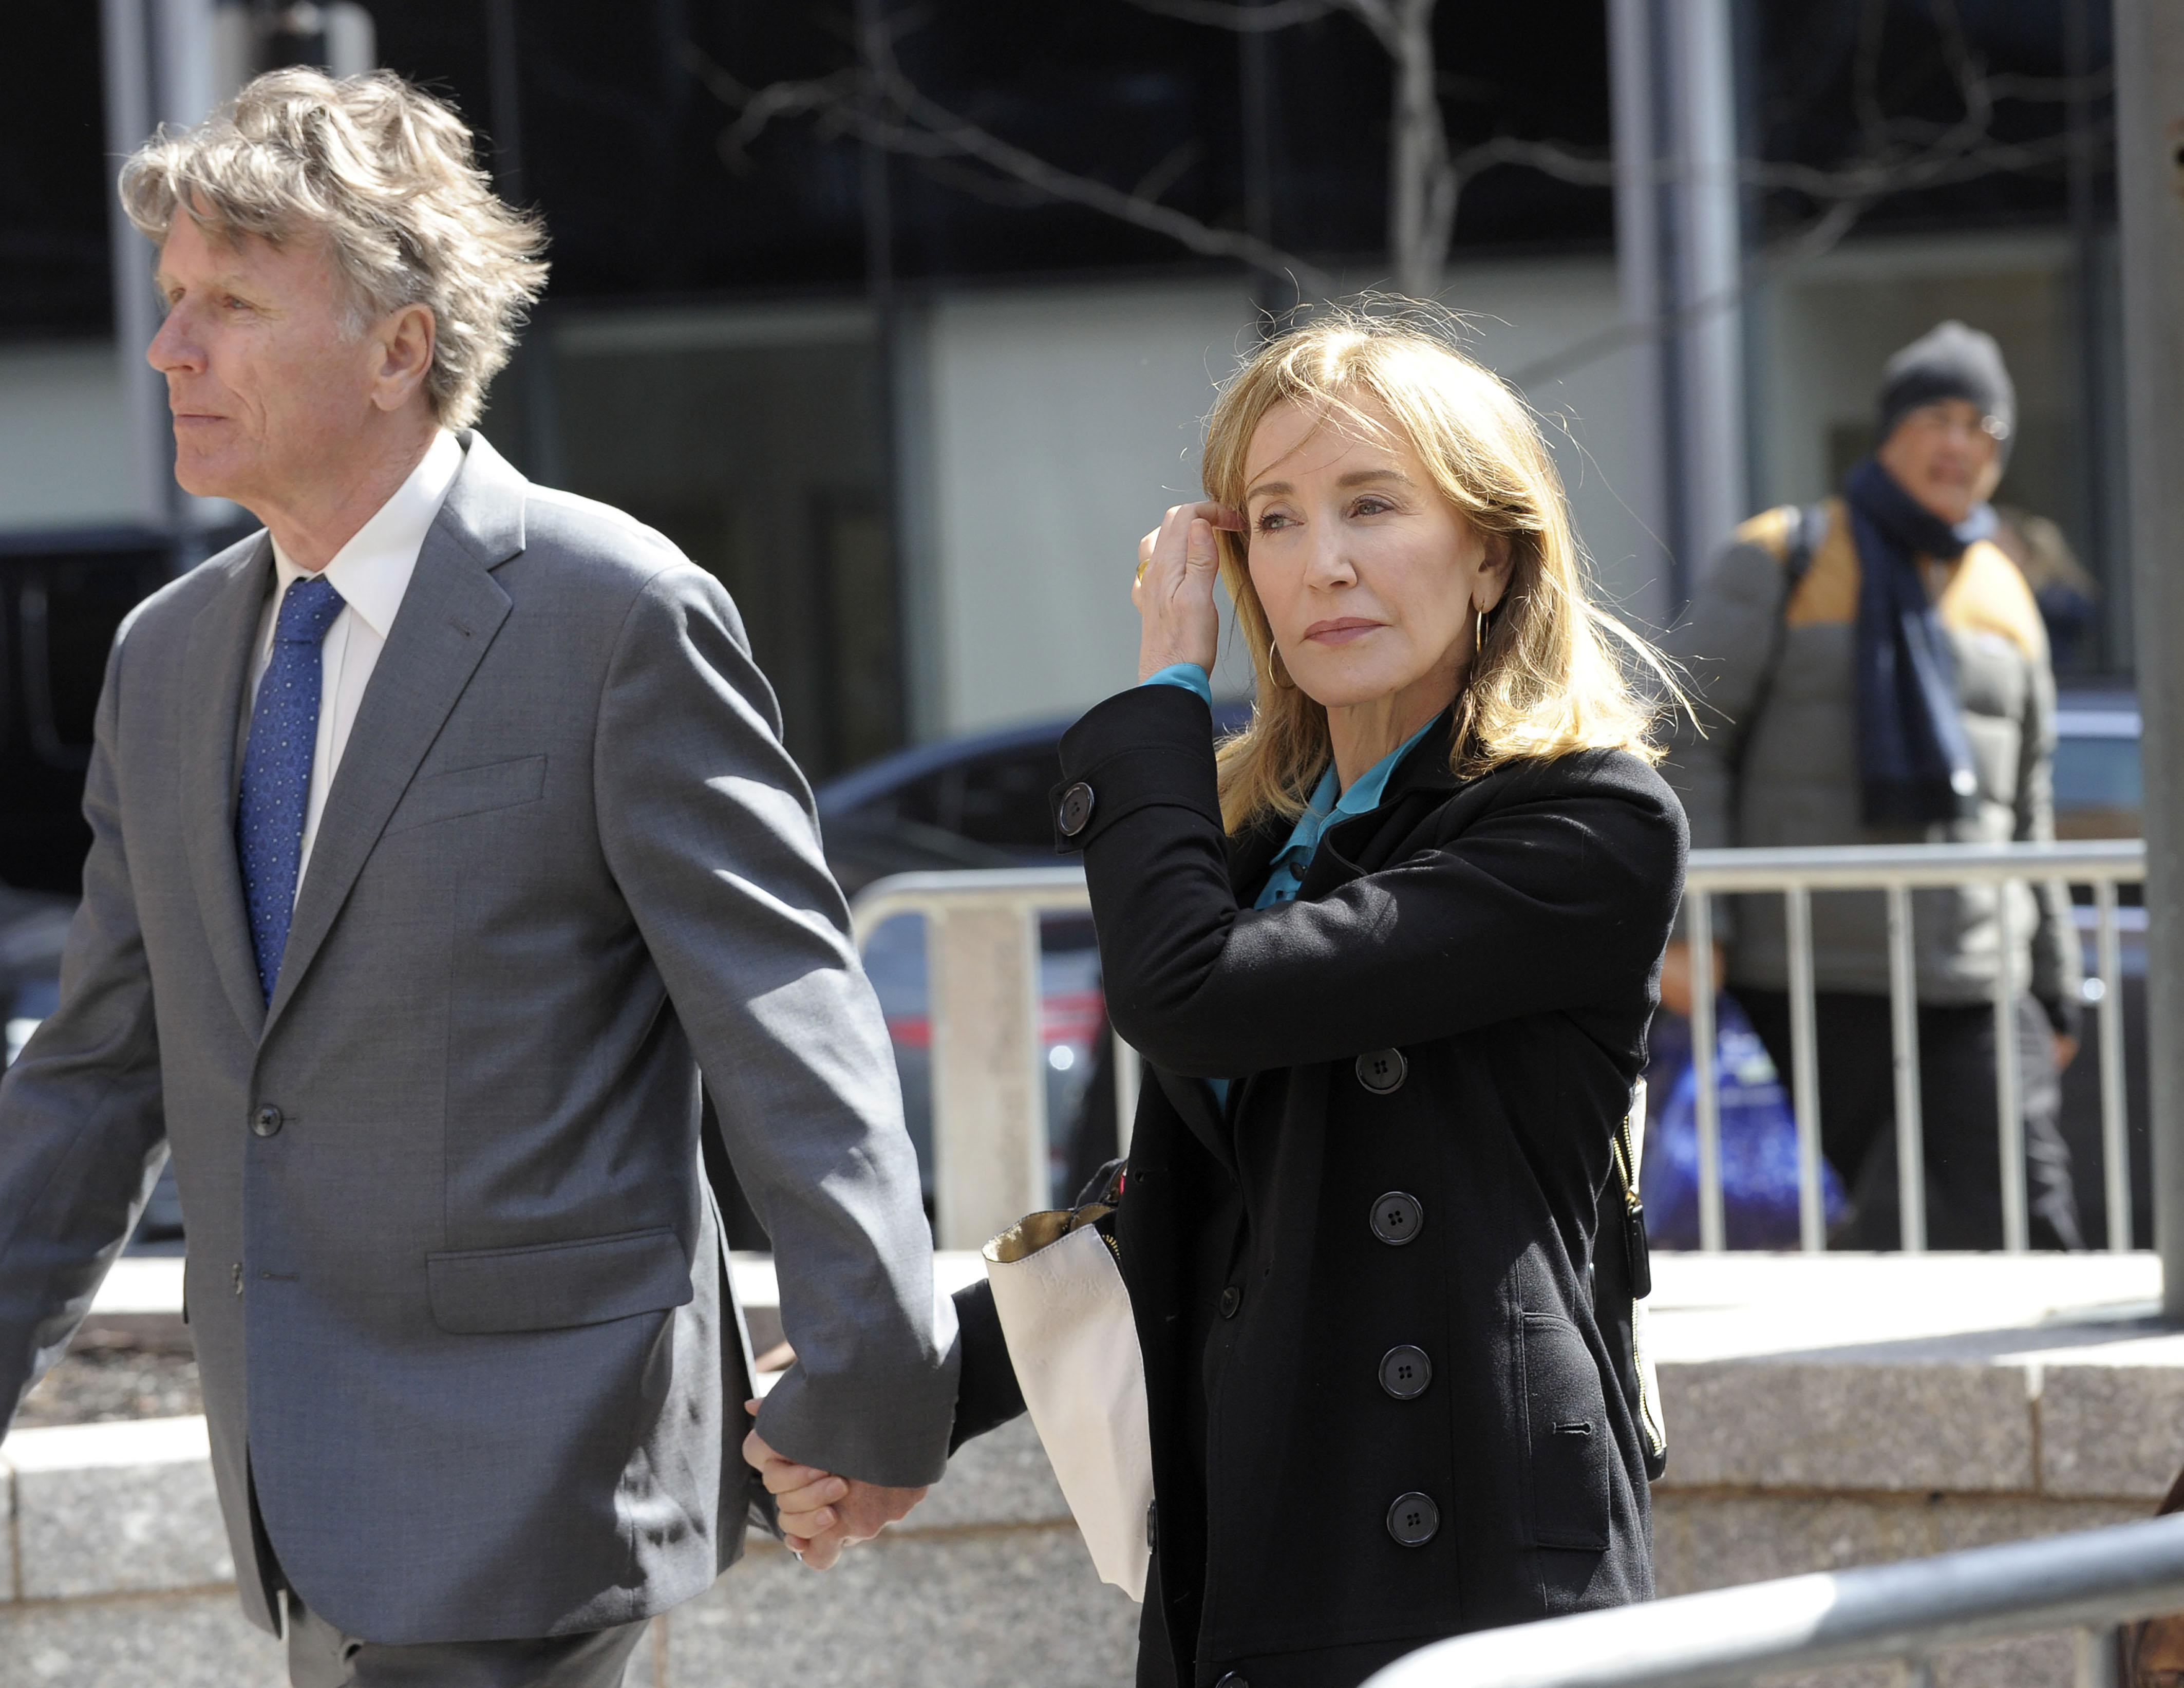 Actress Felicity Huffman enters the court to appear before Judge M. Page Kelley to face charge for allegedly conspiring to commit mail fraud and other charges in the college admissions scandal at the John Joseph Moakley United States Courthouse in Boston, Massachusetts on April 3, 2019. (Photo by Joseph Prezioso / AFP)        (Photo credit should read JOSEPH PREZIOSO/AFP/Getty Images)